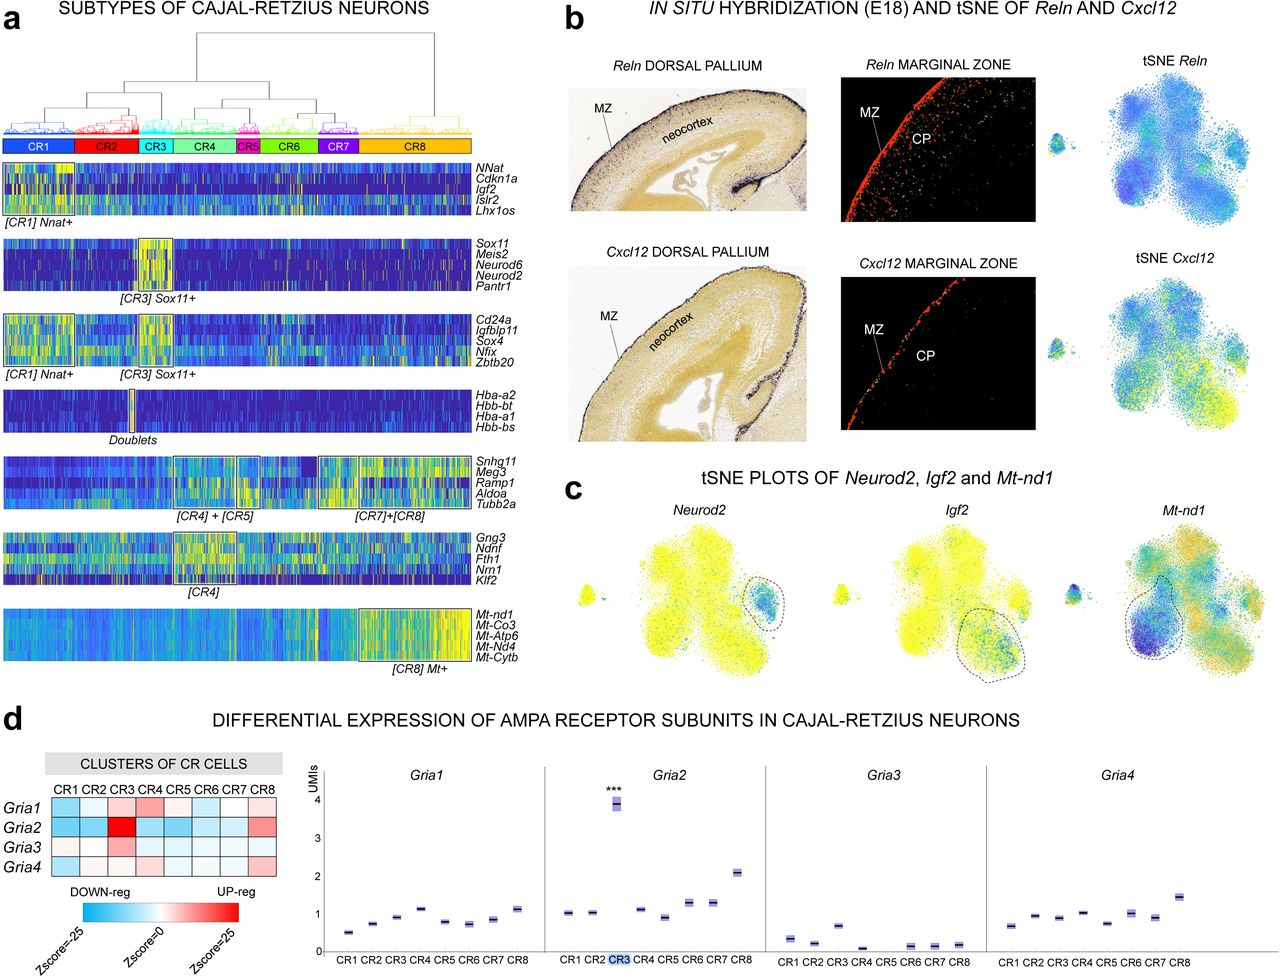 bigSCale: An Analytical Framework for Big-Scale Single-Cell Data